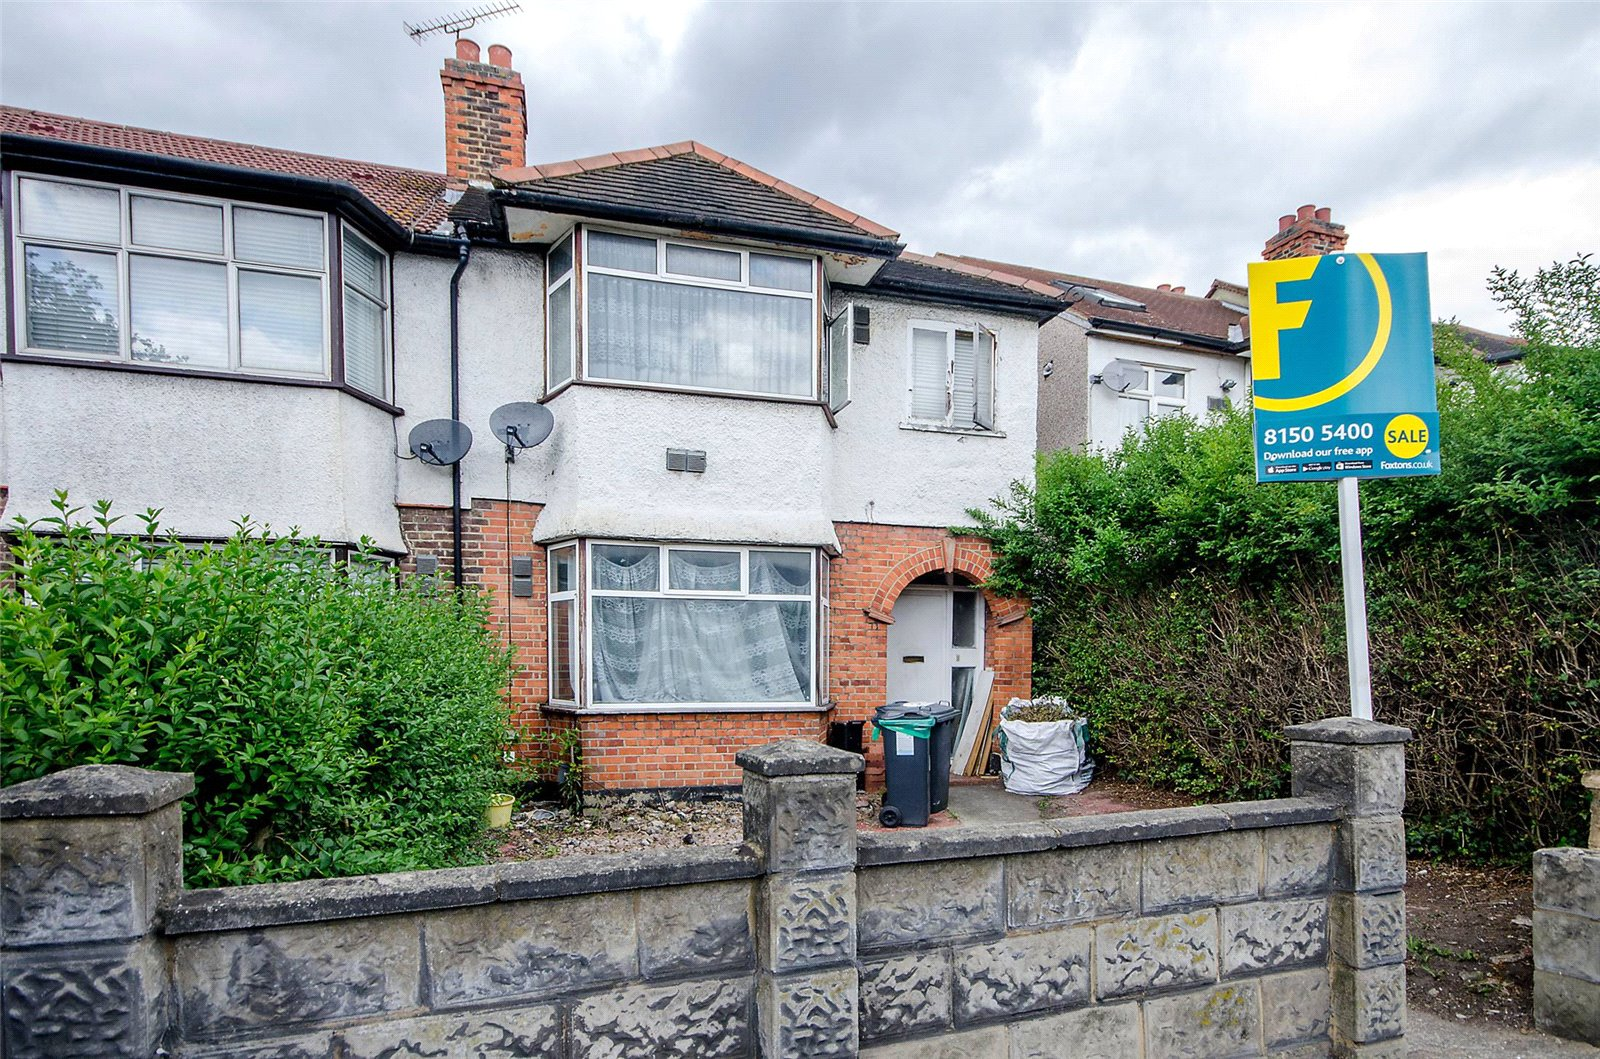 3 bed house for sale in Streatham 0